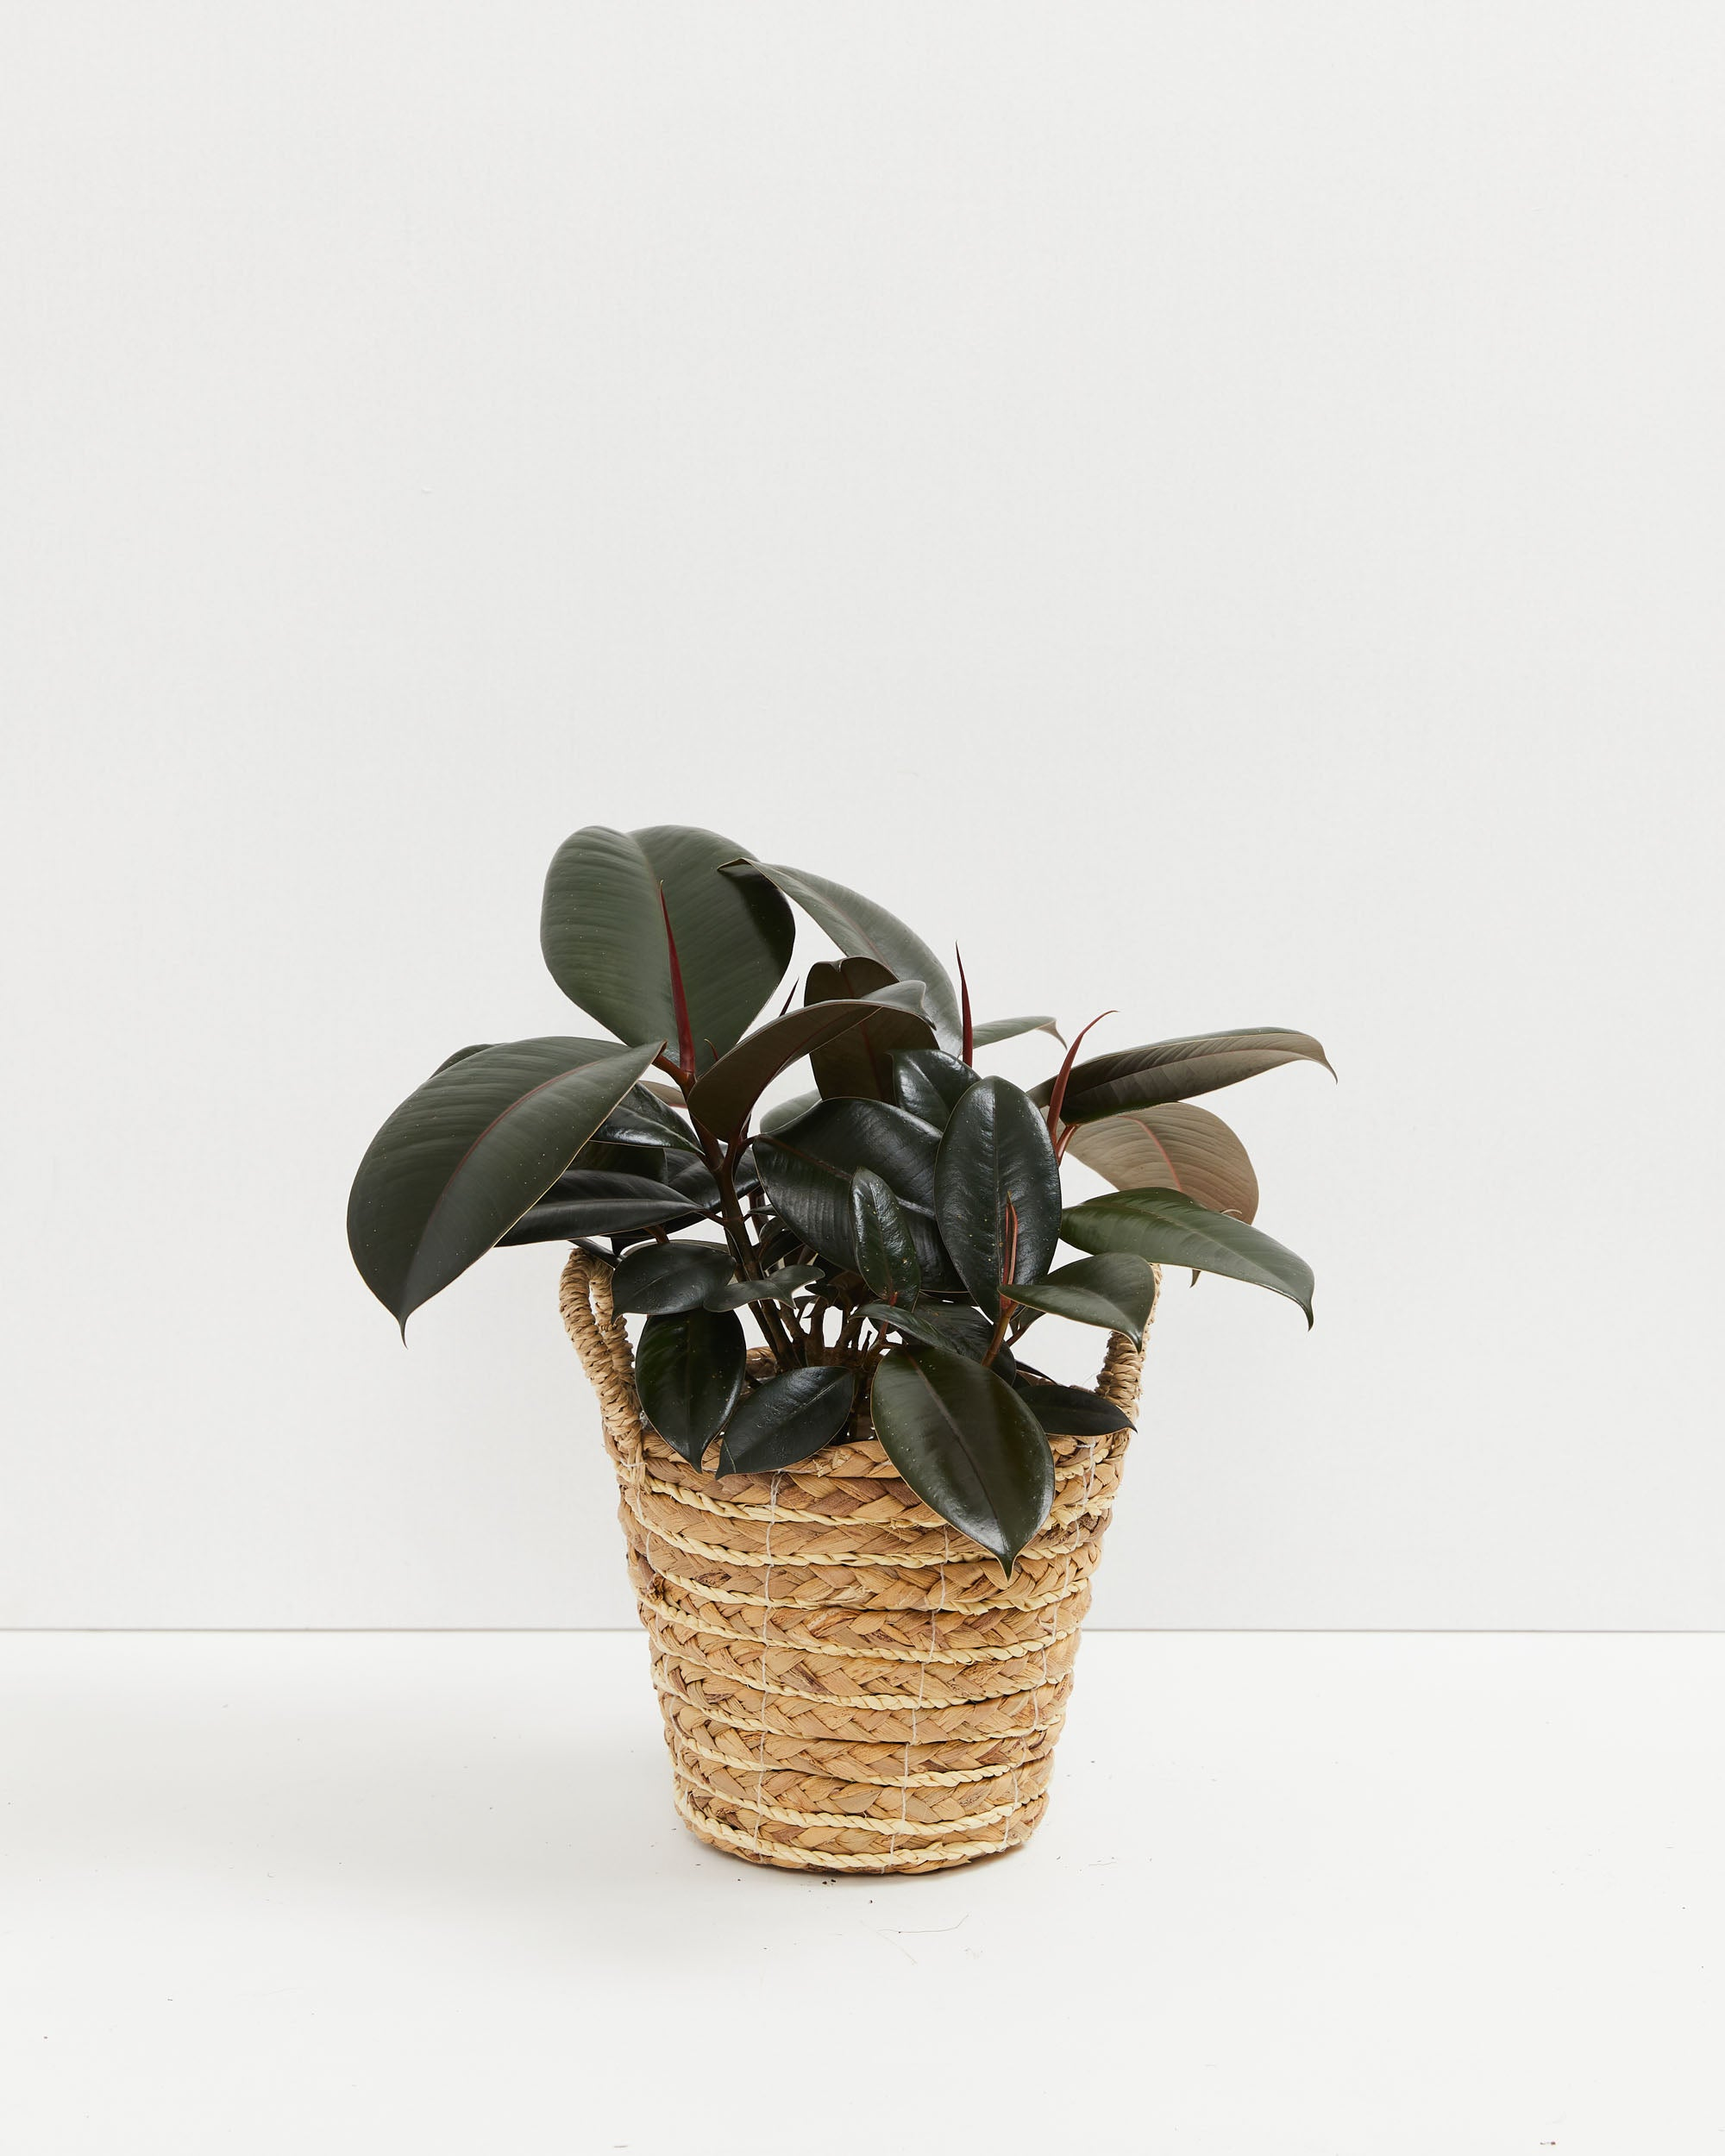 https://www.livelyroot.com/products/burgundy-rubber-tree?variant=39314800377938